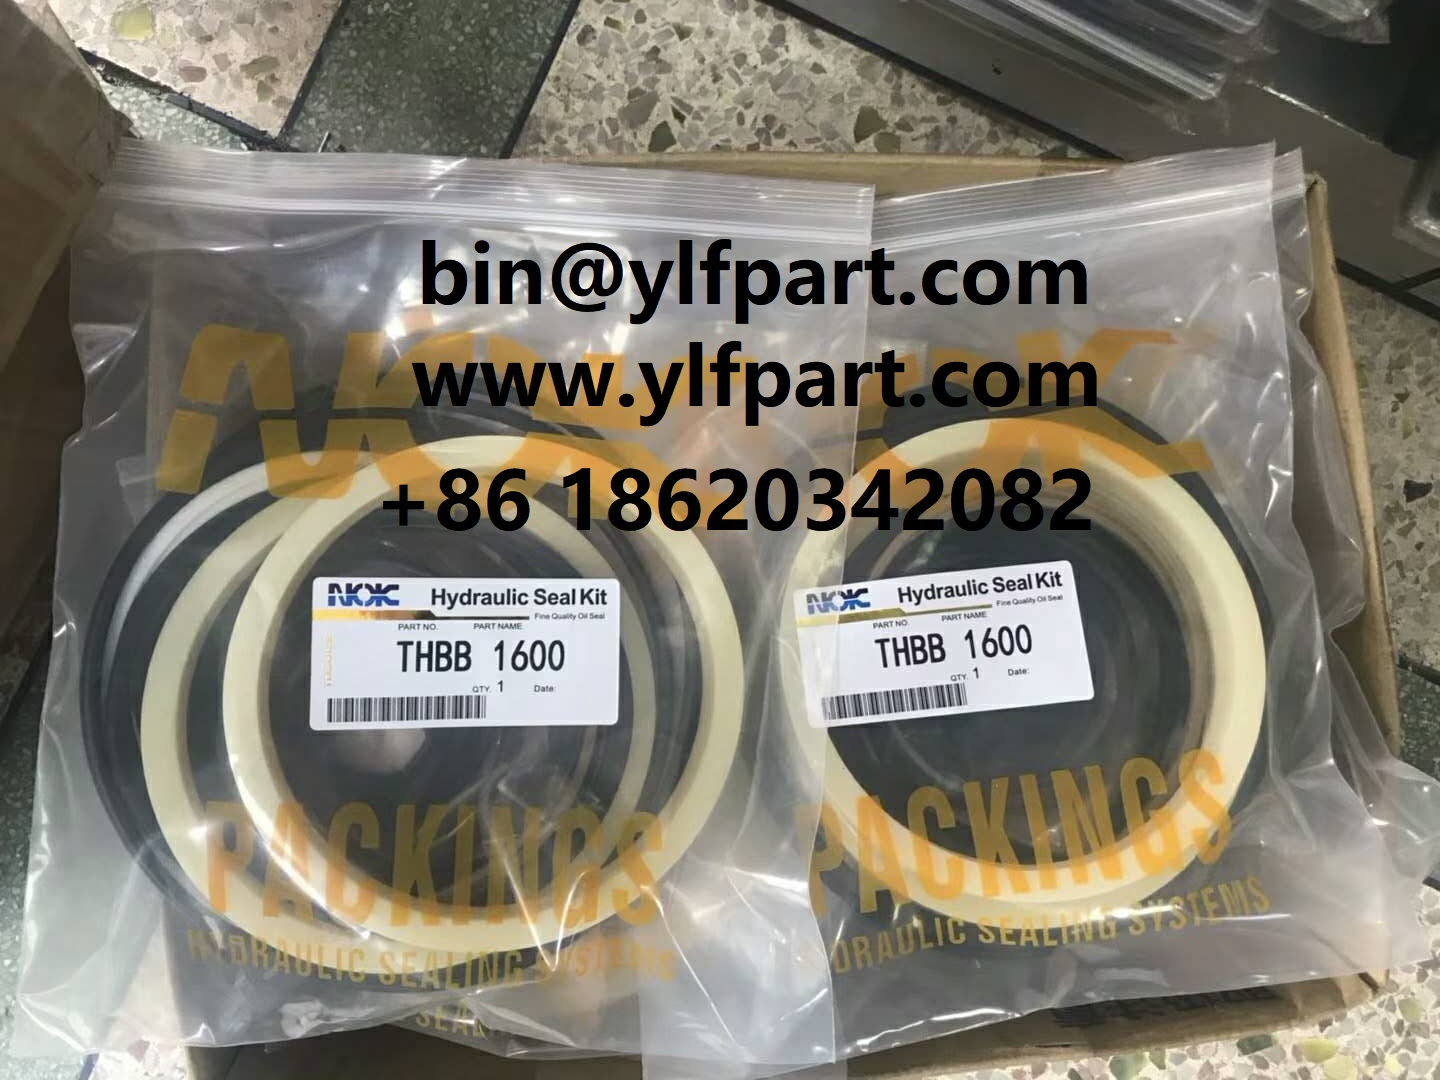 Huskie HH150-2 HH300-2 HH1000-2 Excavator center joint seal kits HH500-2 HH750-2 HH2000-2 hydraulic jack oil seal kits